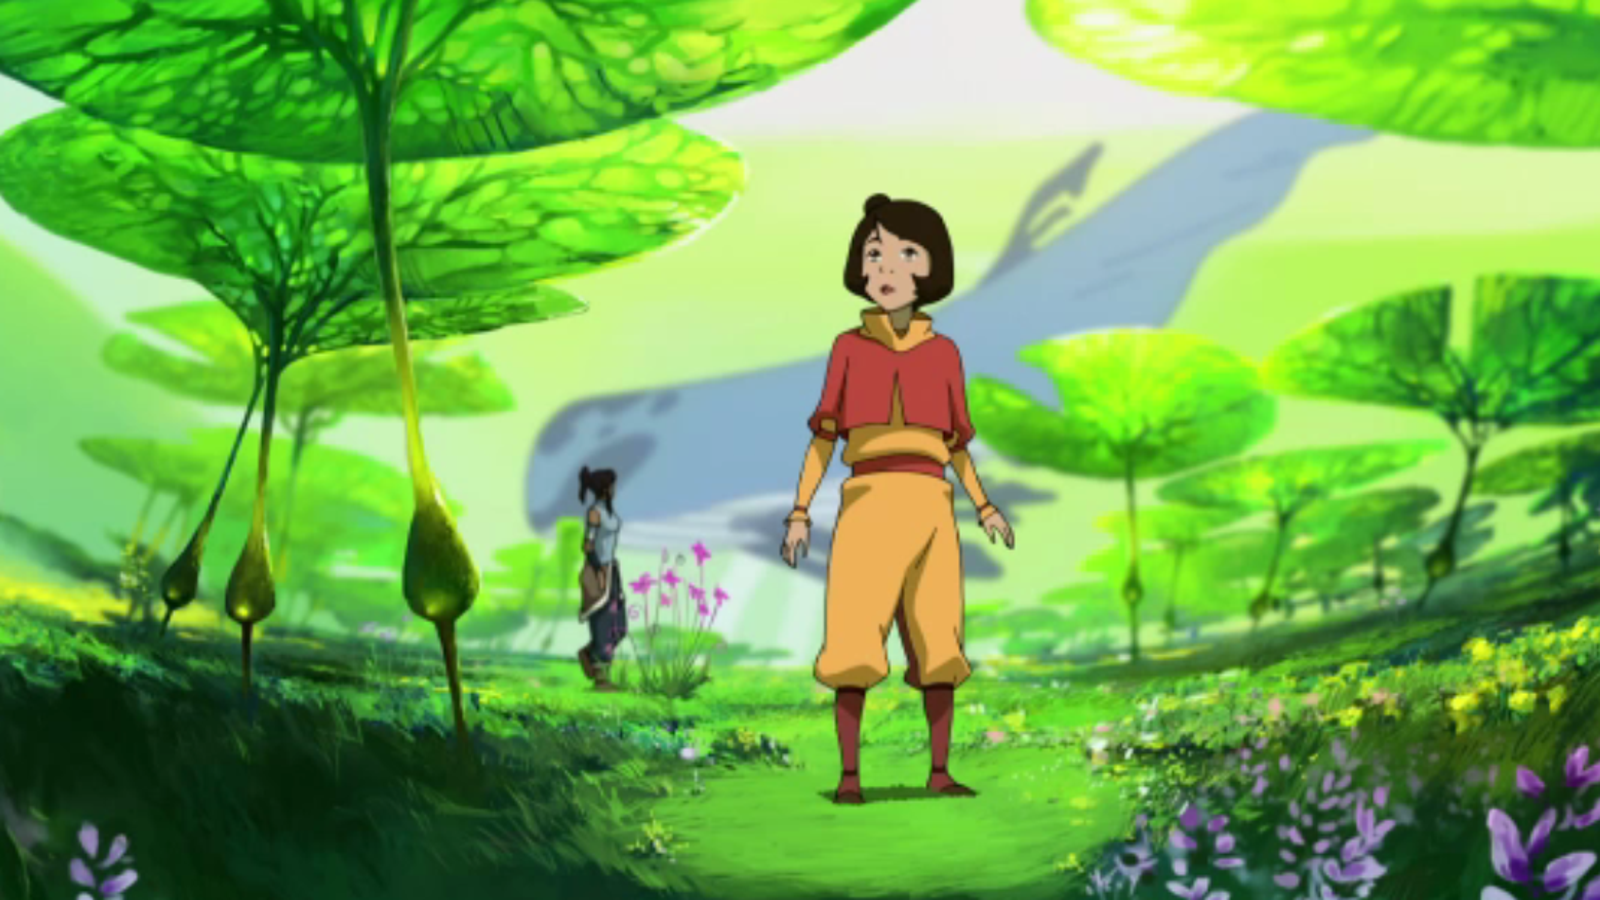 Korra Brings Back Some Familiar Faces From Avatar The Last Airbender